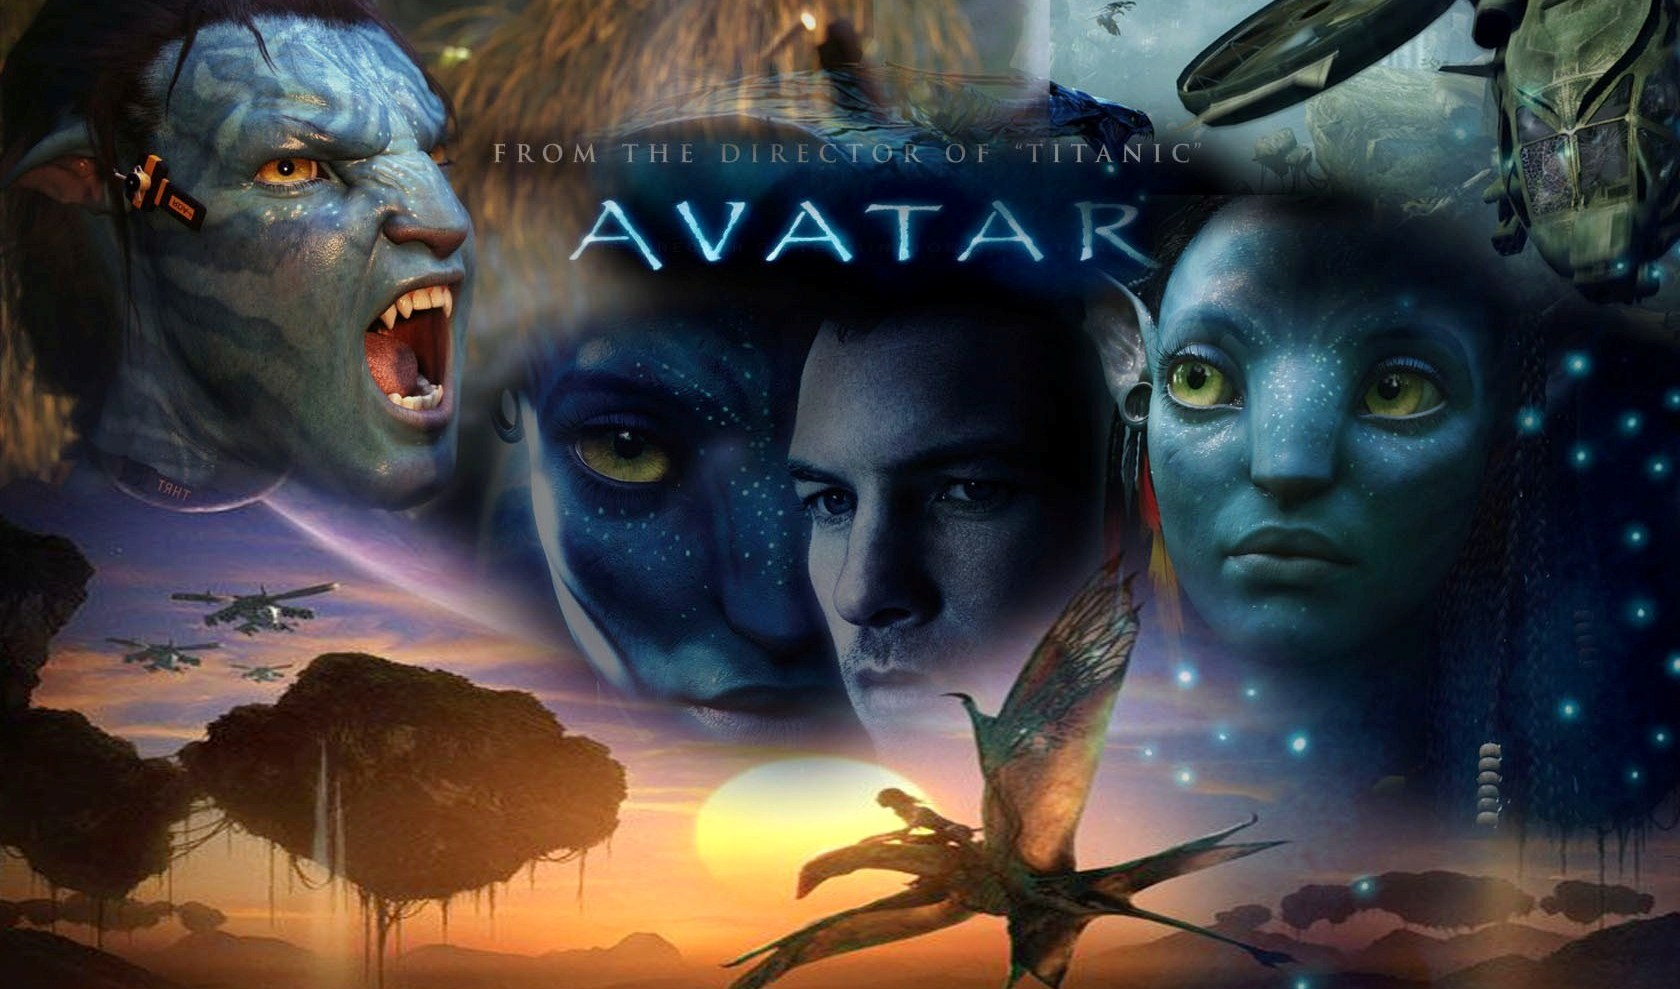 Top 10 Worldwide Highest Grossing Hollywood Movies